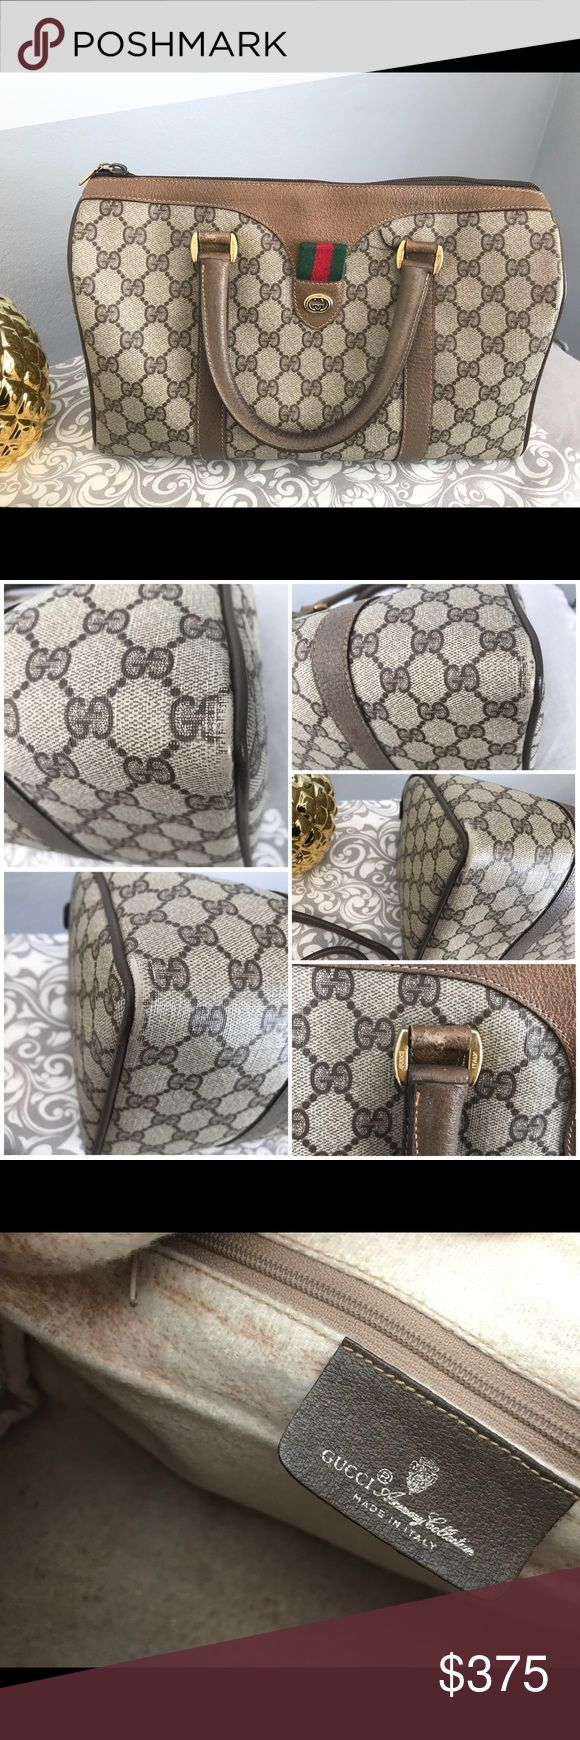 Gucci Vintage Boston Bag Rubbing on corners. Scratch below handle (see pictures). Comes with a long strap & dust bag. Still has lots of life. Any questions are answered ONLY through here. I DON'T ACCEPT CASHIERS CHECKS NOR WILL I EMAIL YOU. SERIOUS BUYERS ONLY. Gucci Bags Satchels